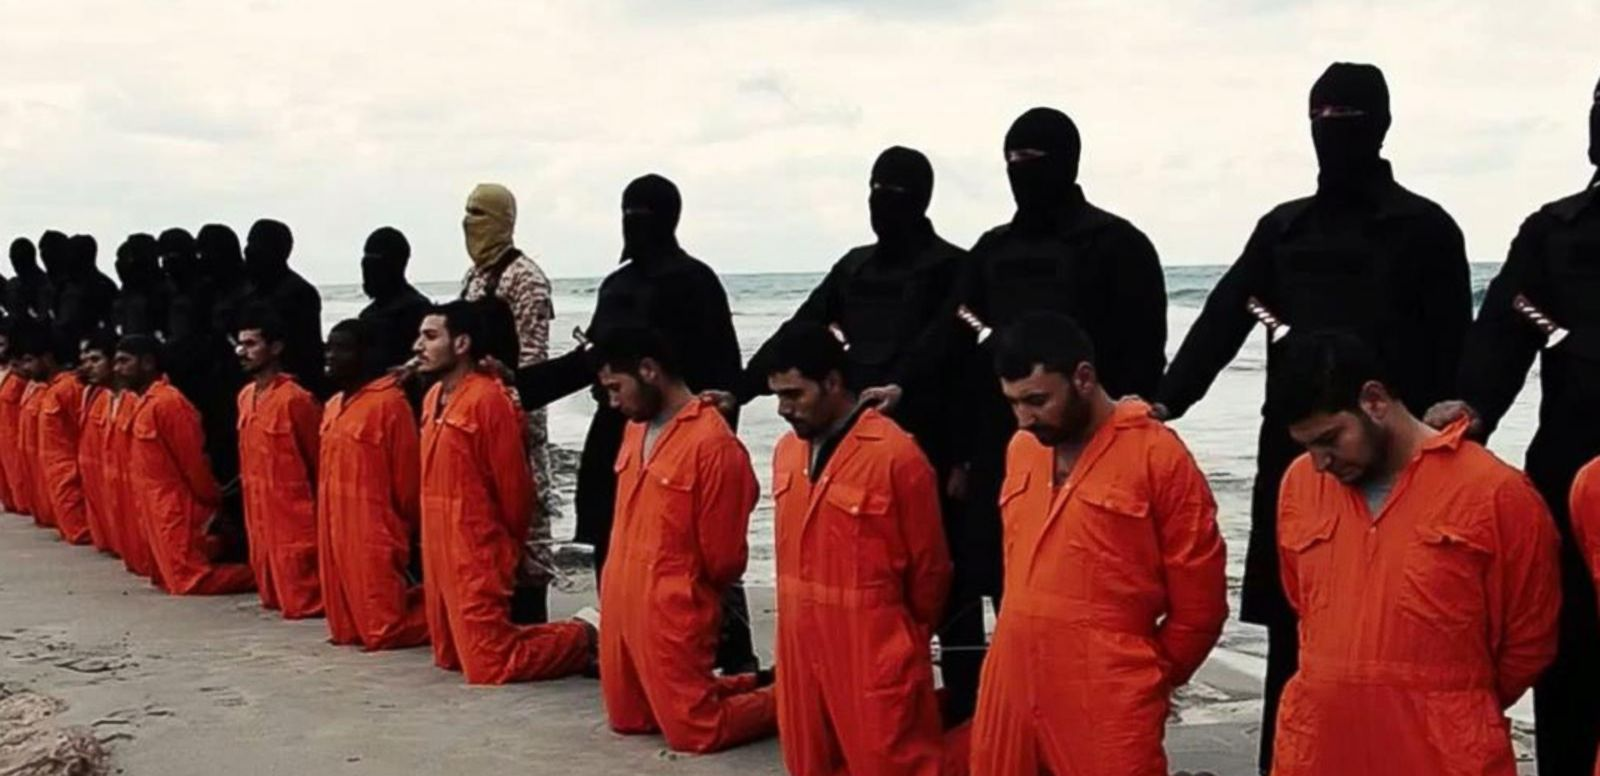 VIDEO: Gruesome ISIS Video Purports to Show Terror Group in Libya